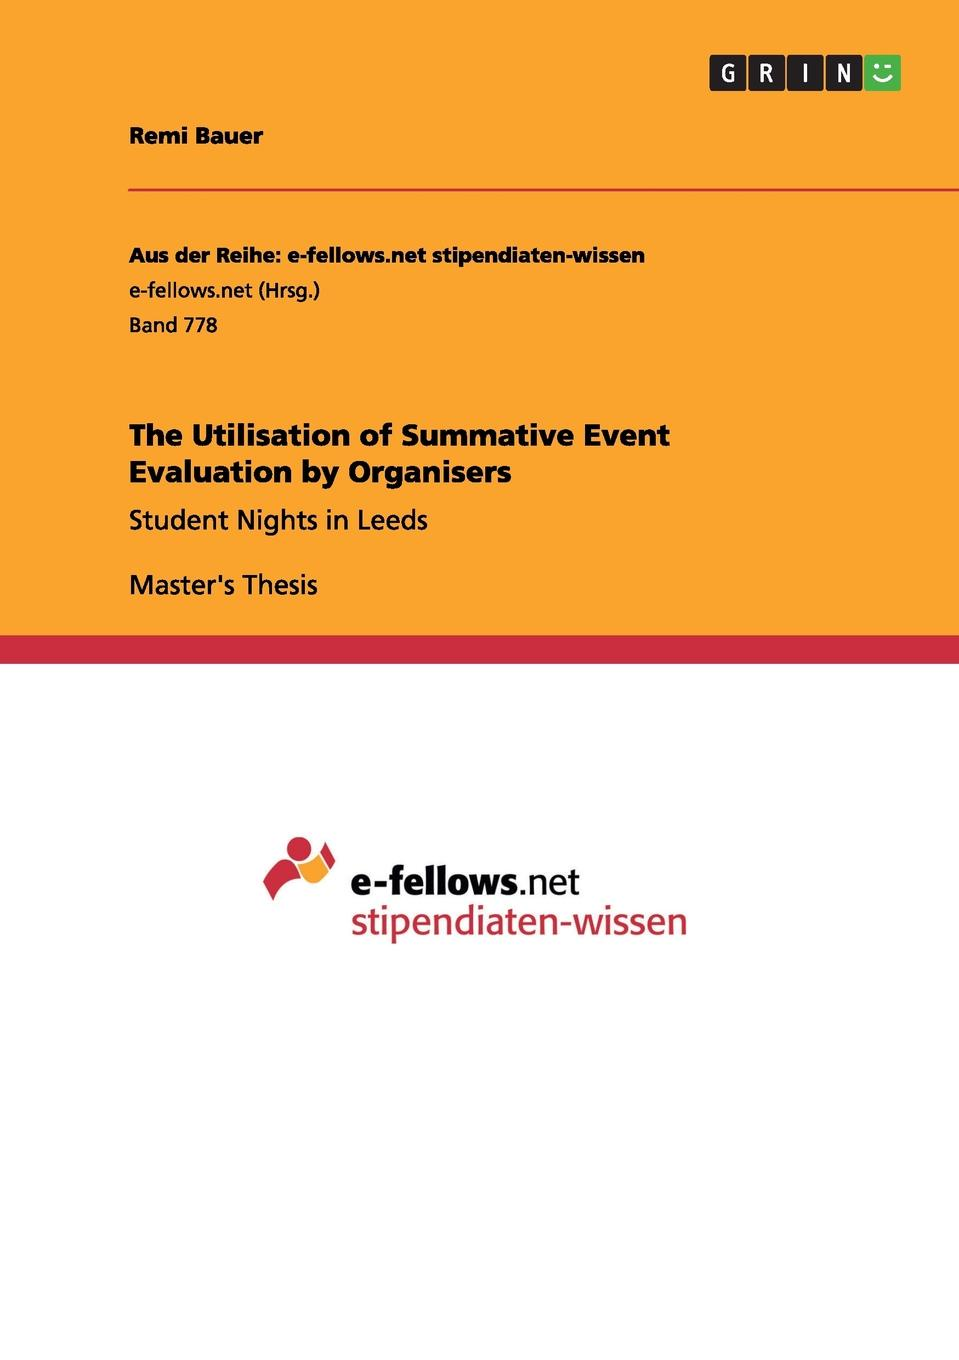 Remi Bauer The Utilisation of Summative Event Evaluation by Organisers the international dictionary of event management